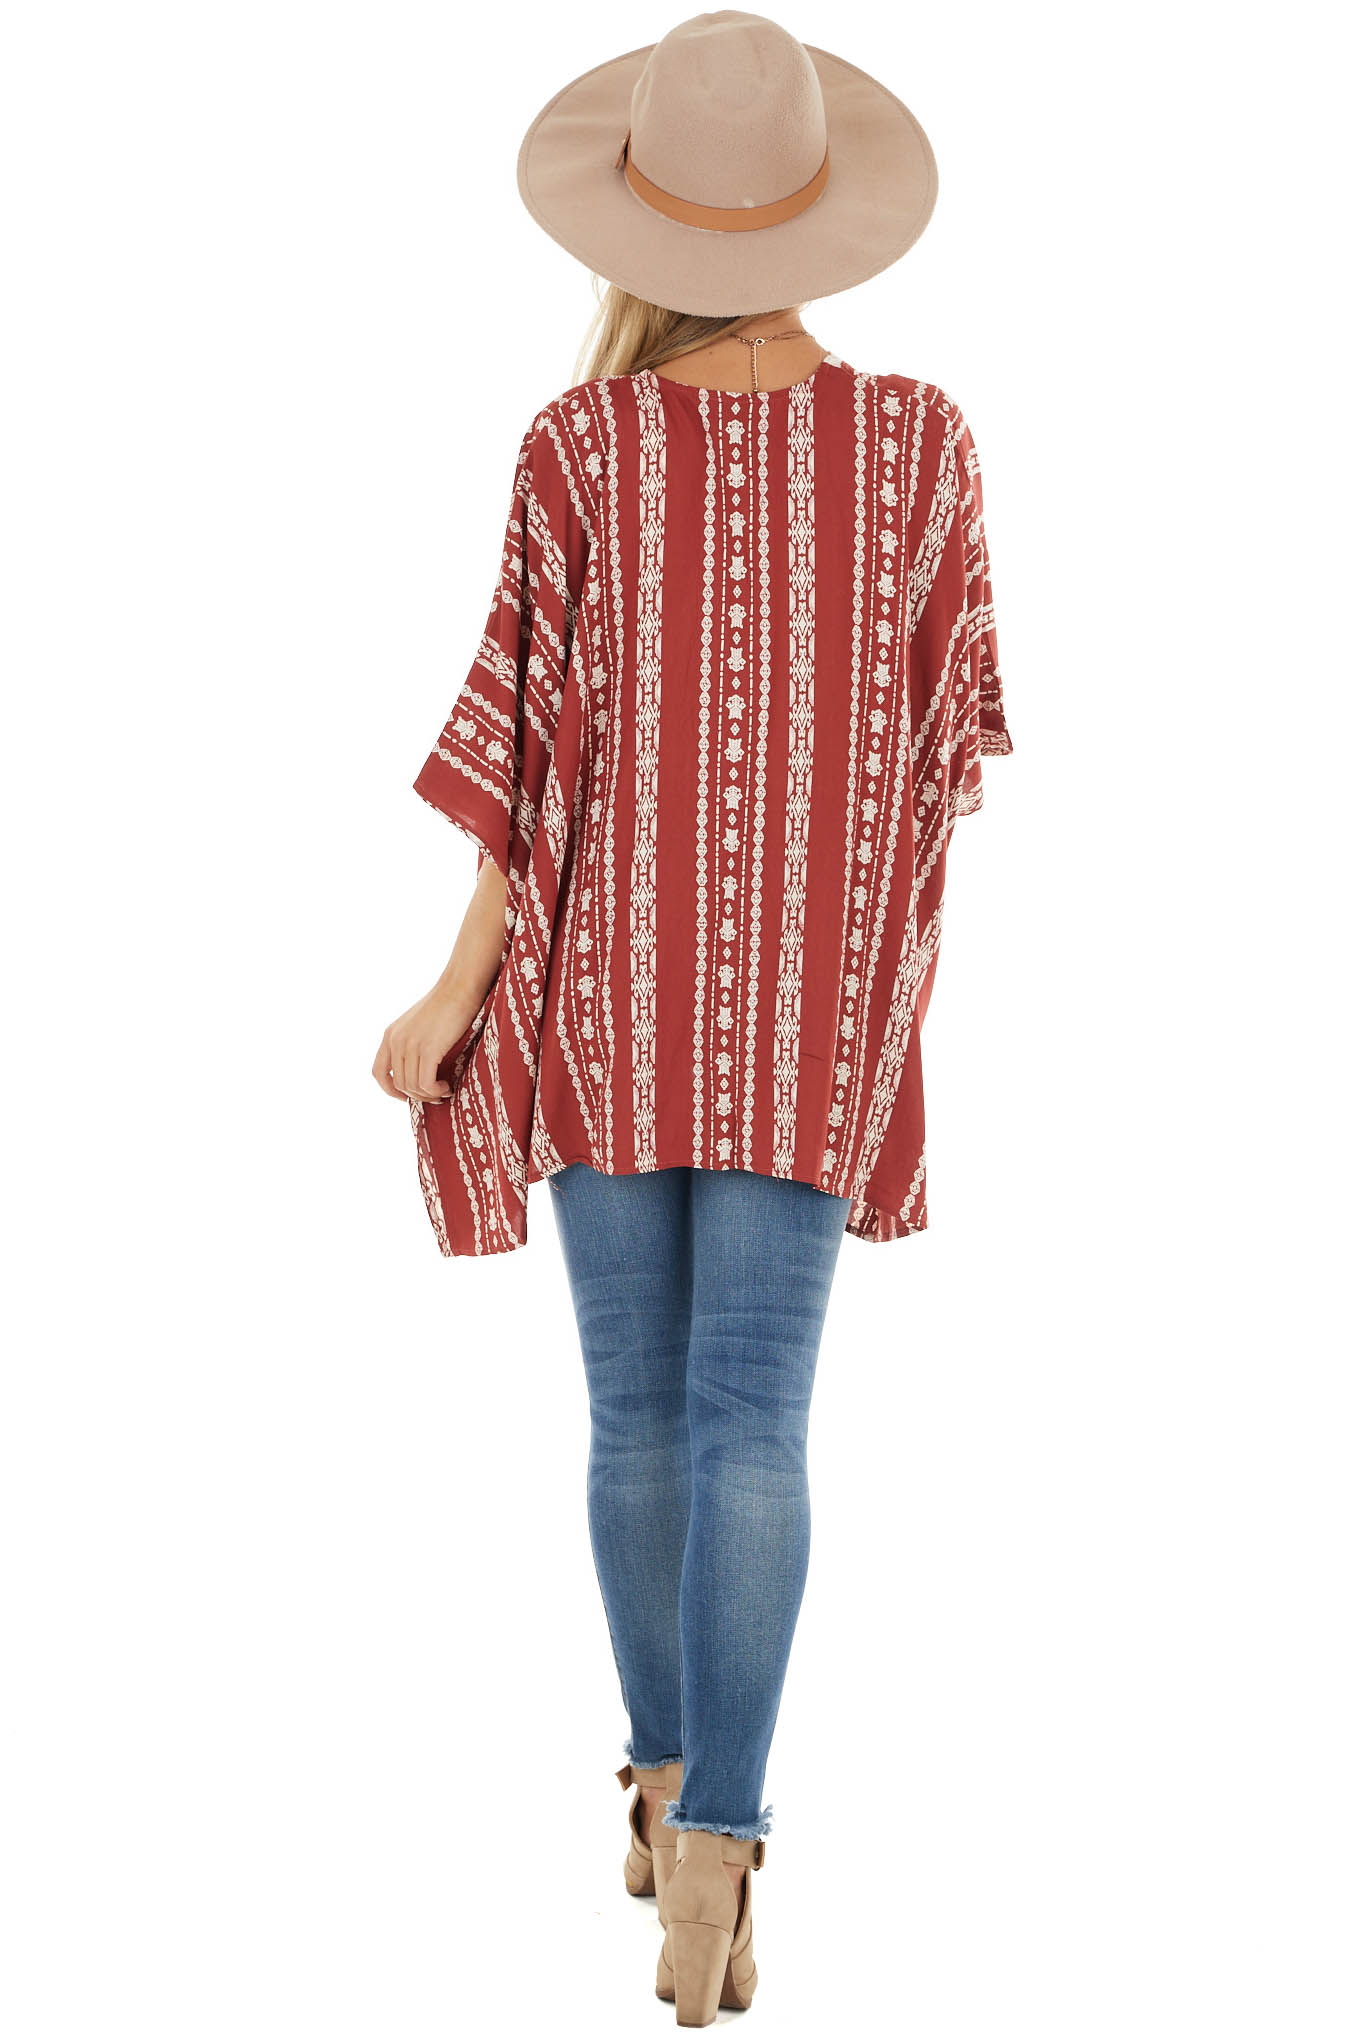 Rust Patterned Short Length Kimono with Ivory Lace Trim